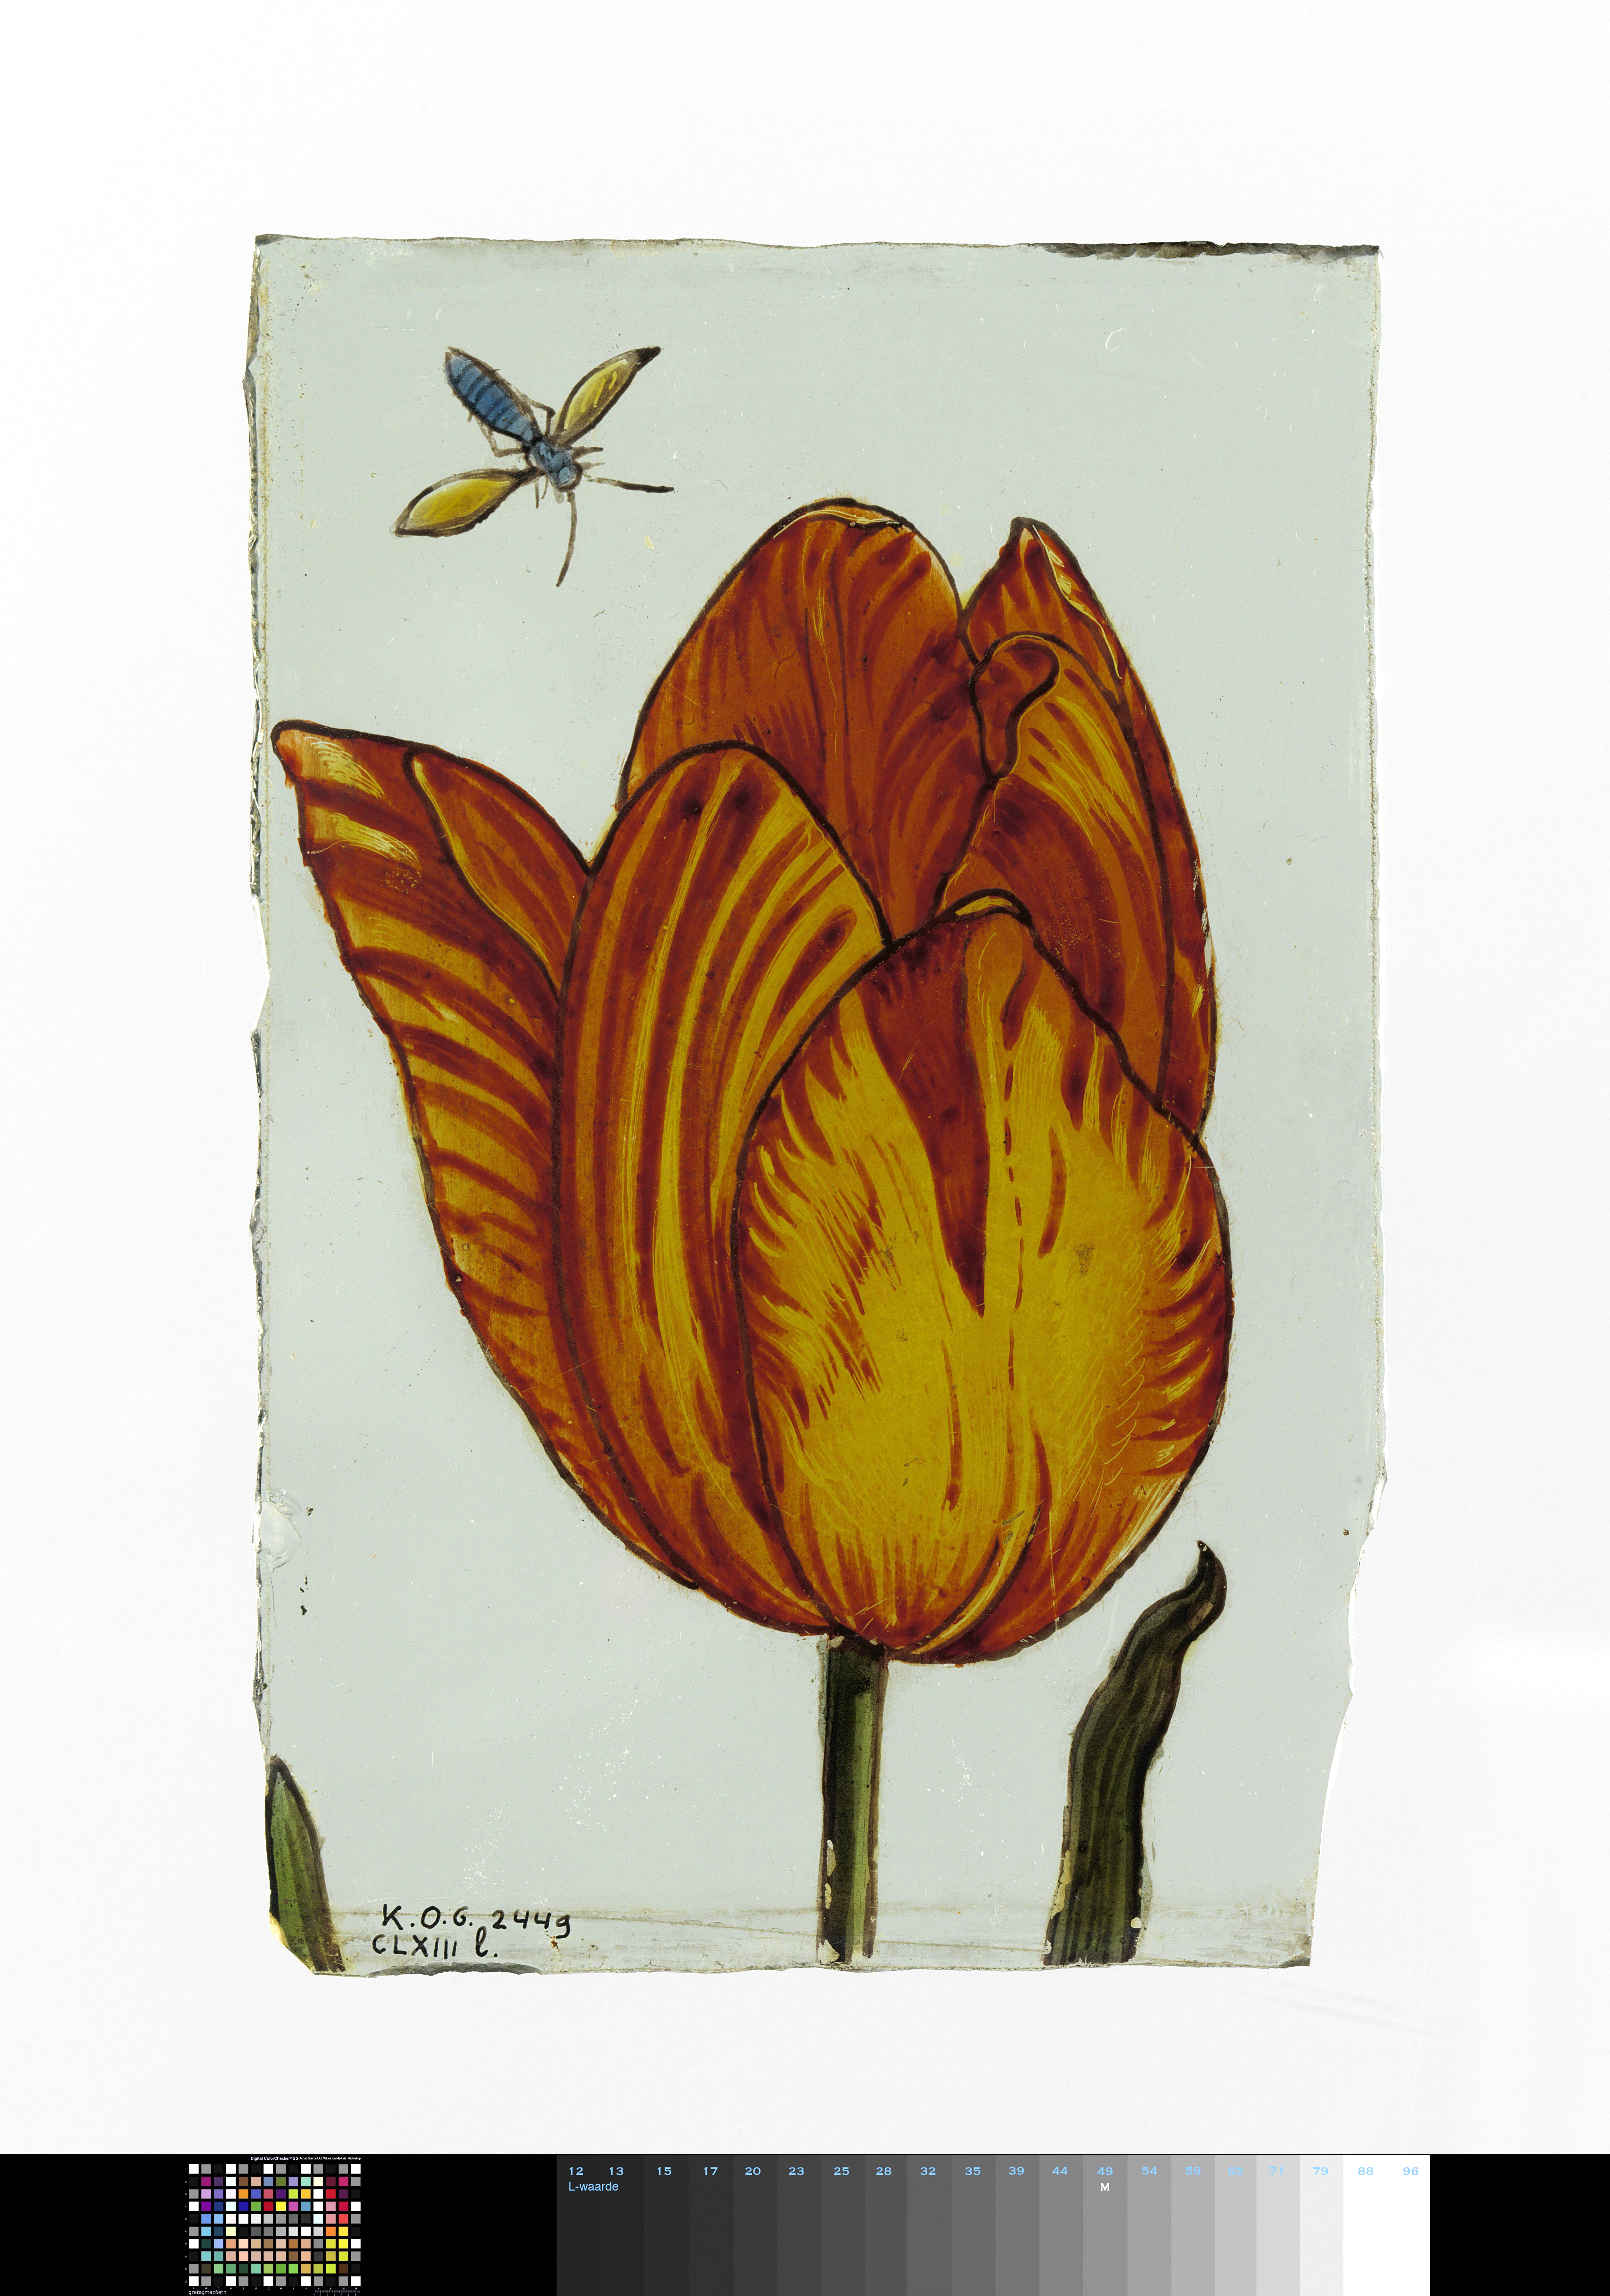 Glass painted with a Tulip and Insect